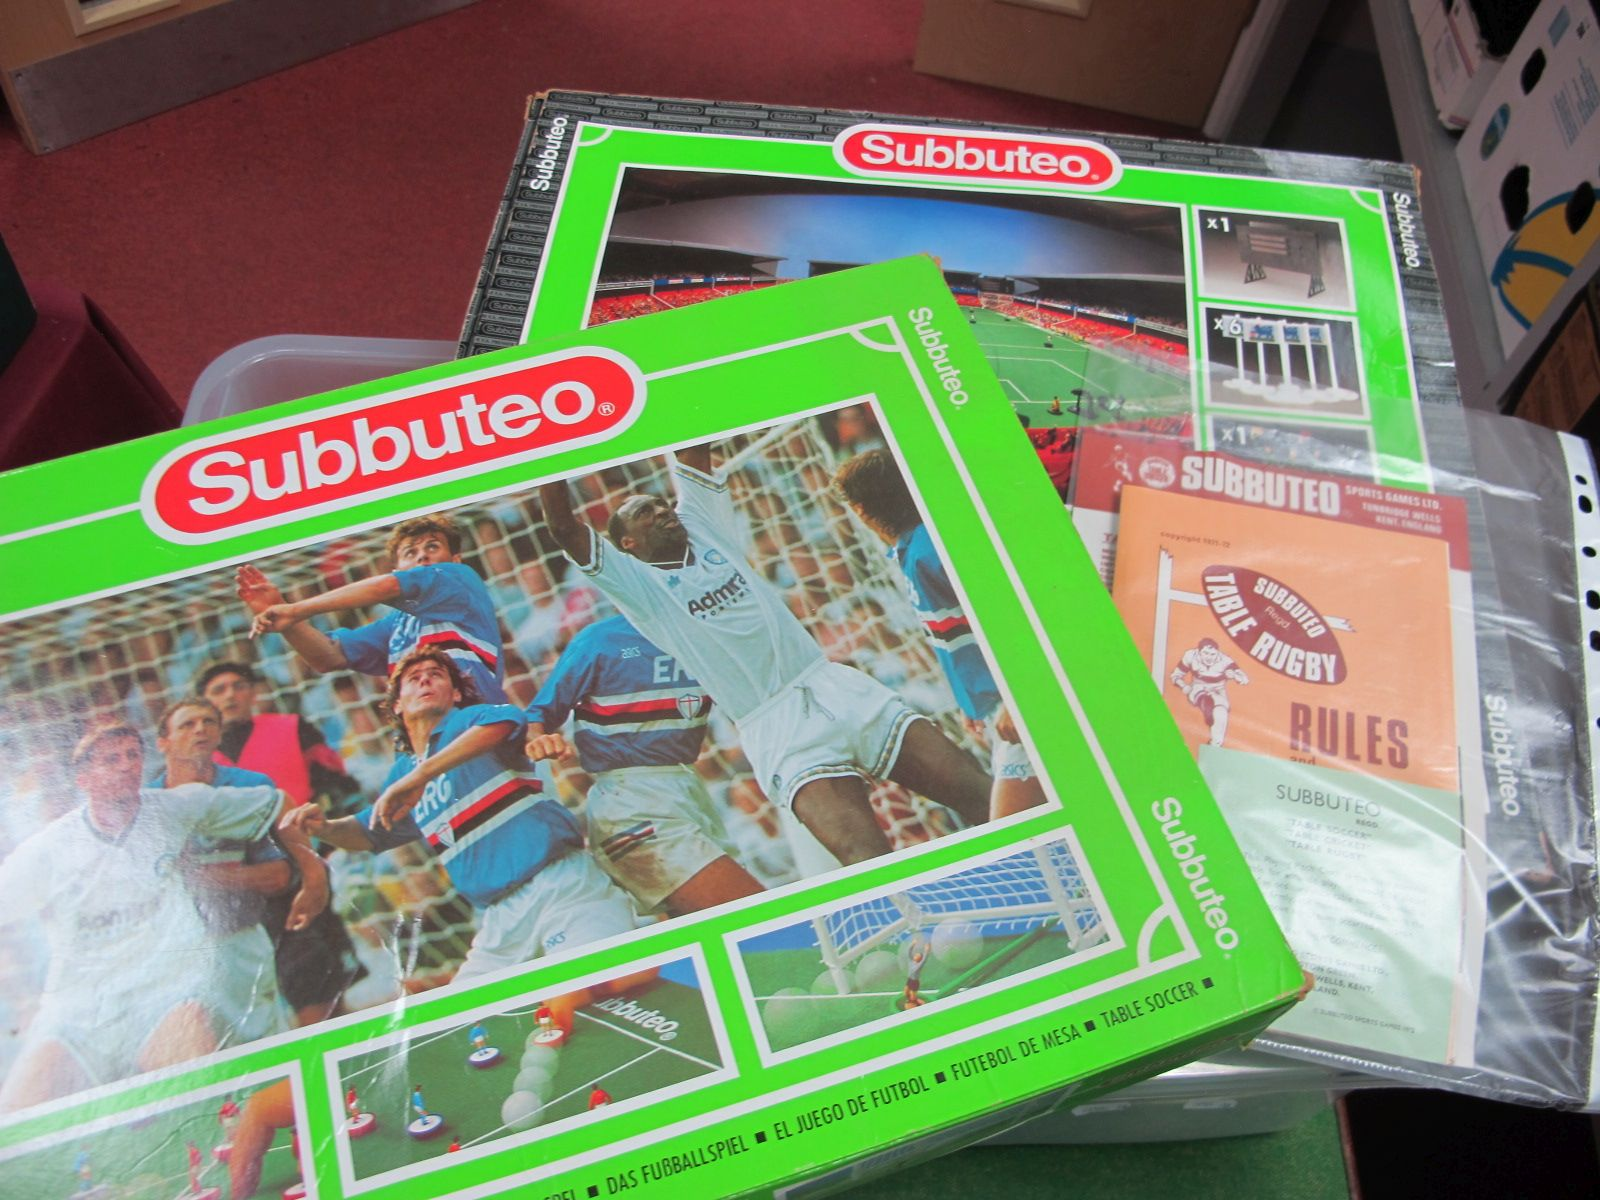 Subbuteo: Two Boxed Subbuteo Games, unchecked, Subbuteo papers and a tin of playing cards.